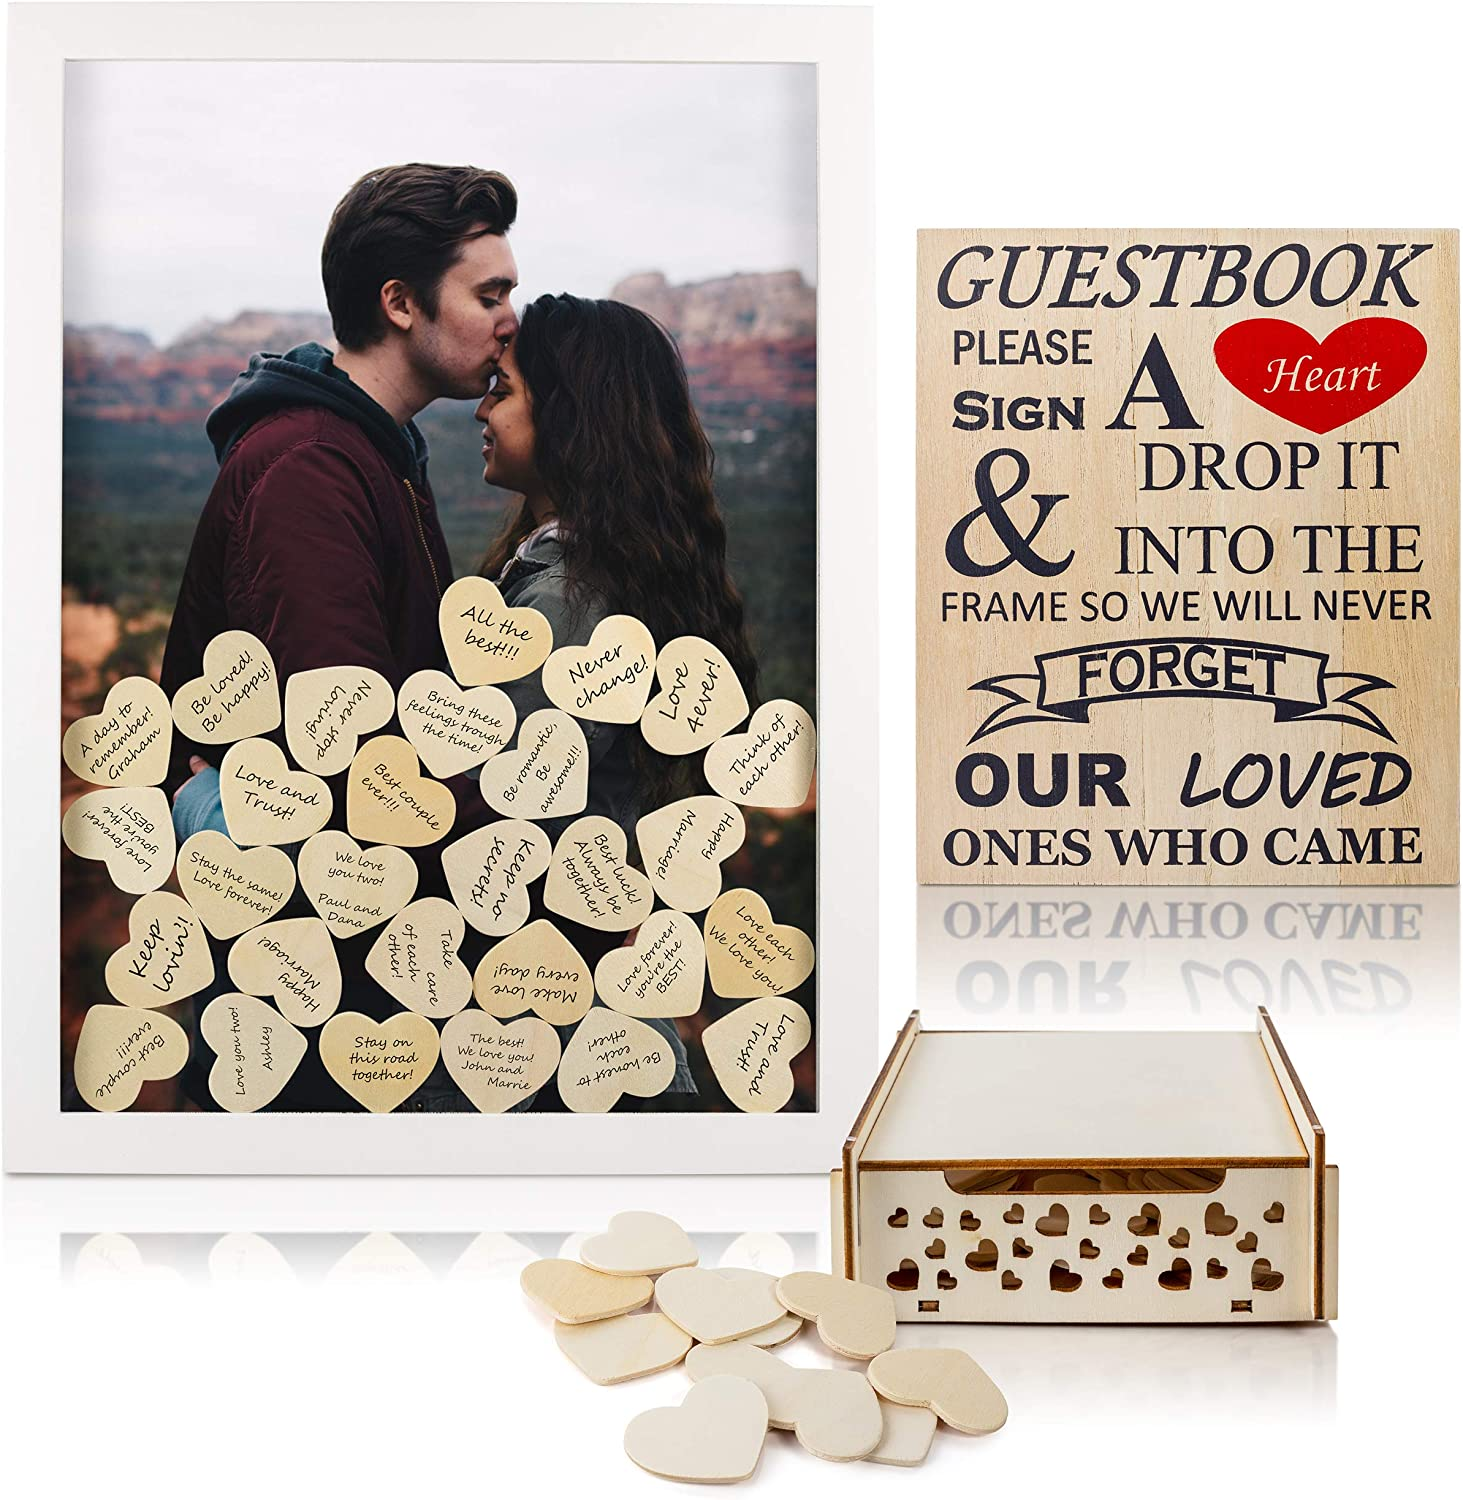 V-COSTA New mail order Wedding Guest Book Alternative for S 2021 spring and summer new with Hearts